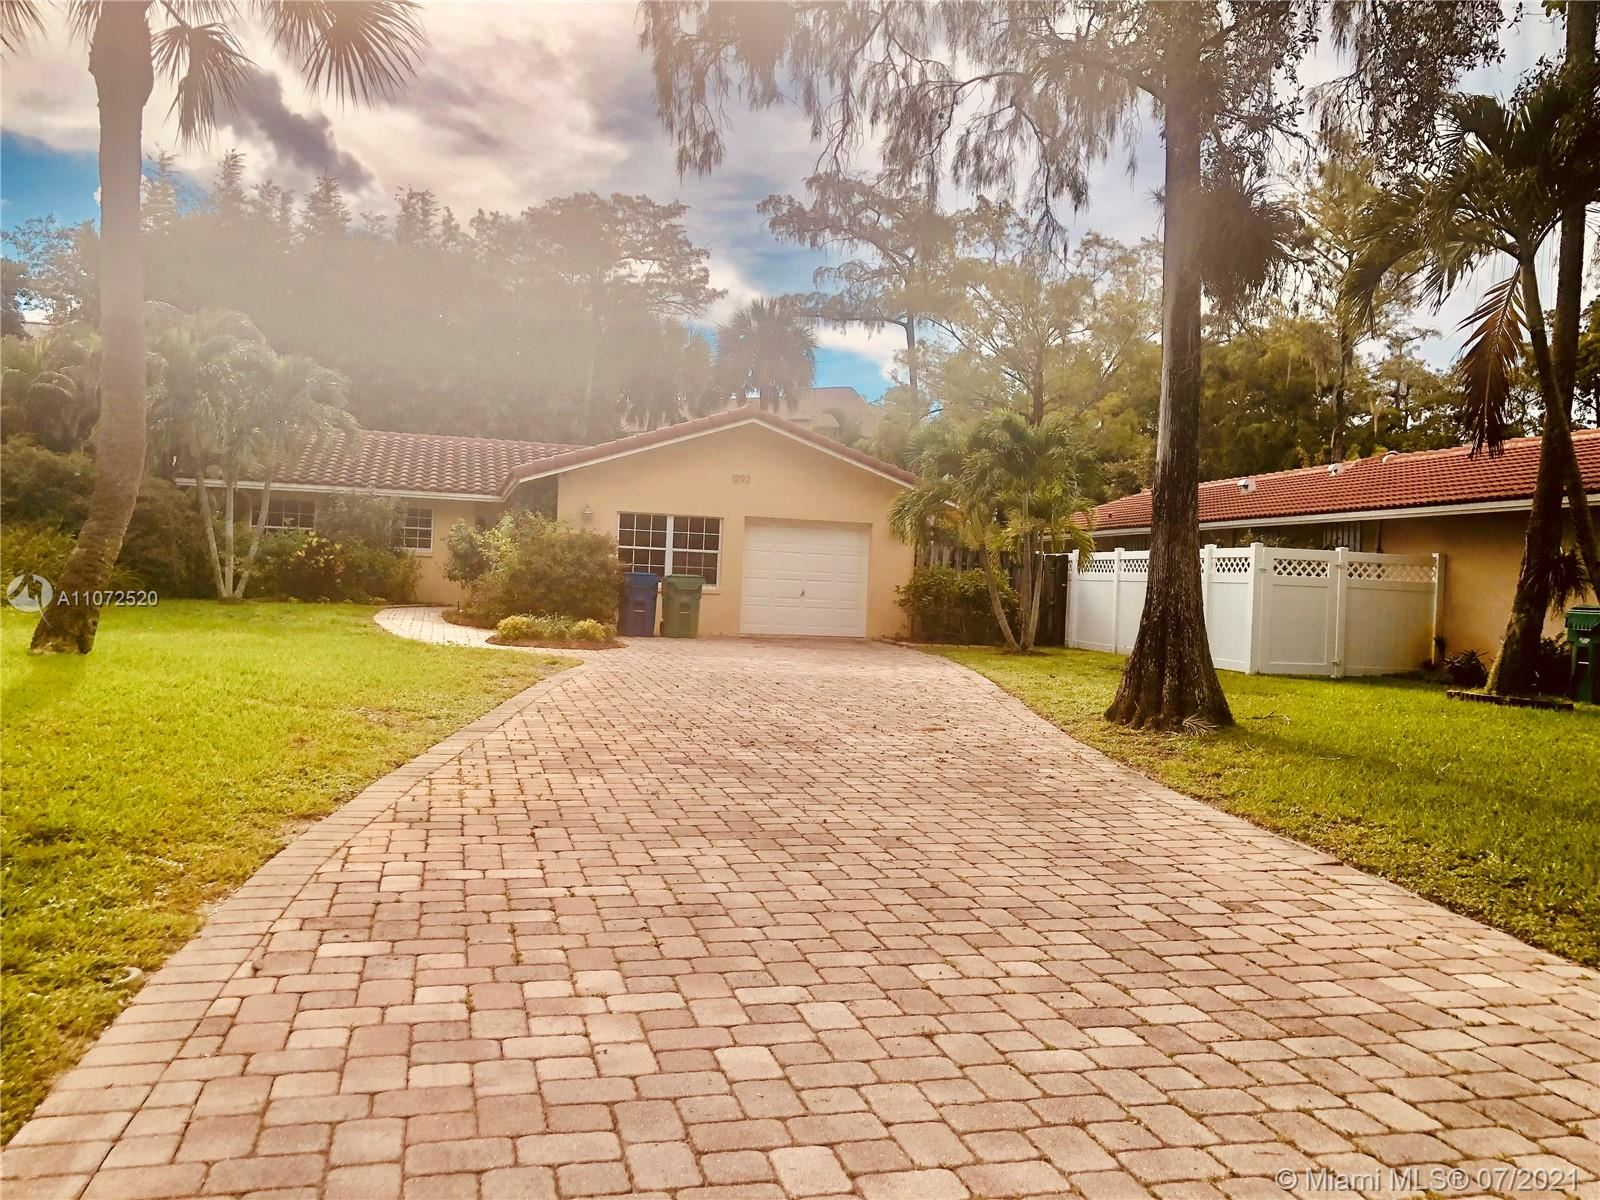 1292 NW 87th Ave, Coral Springs, FL 33071 - #: A11072520